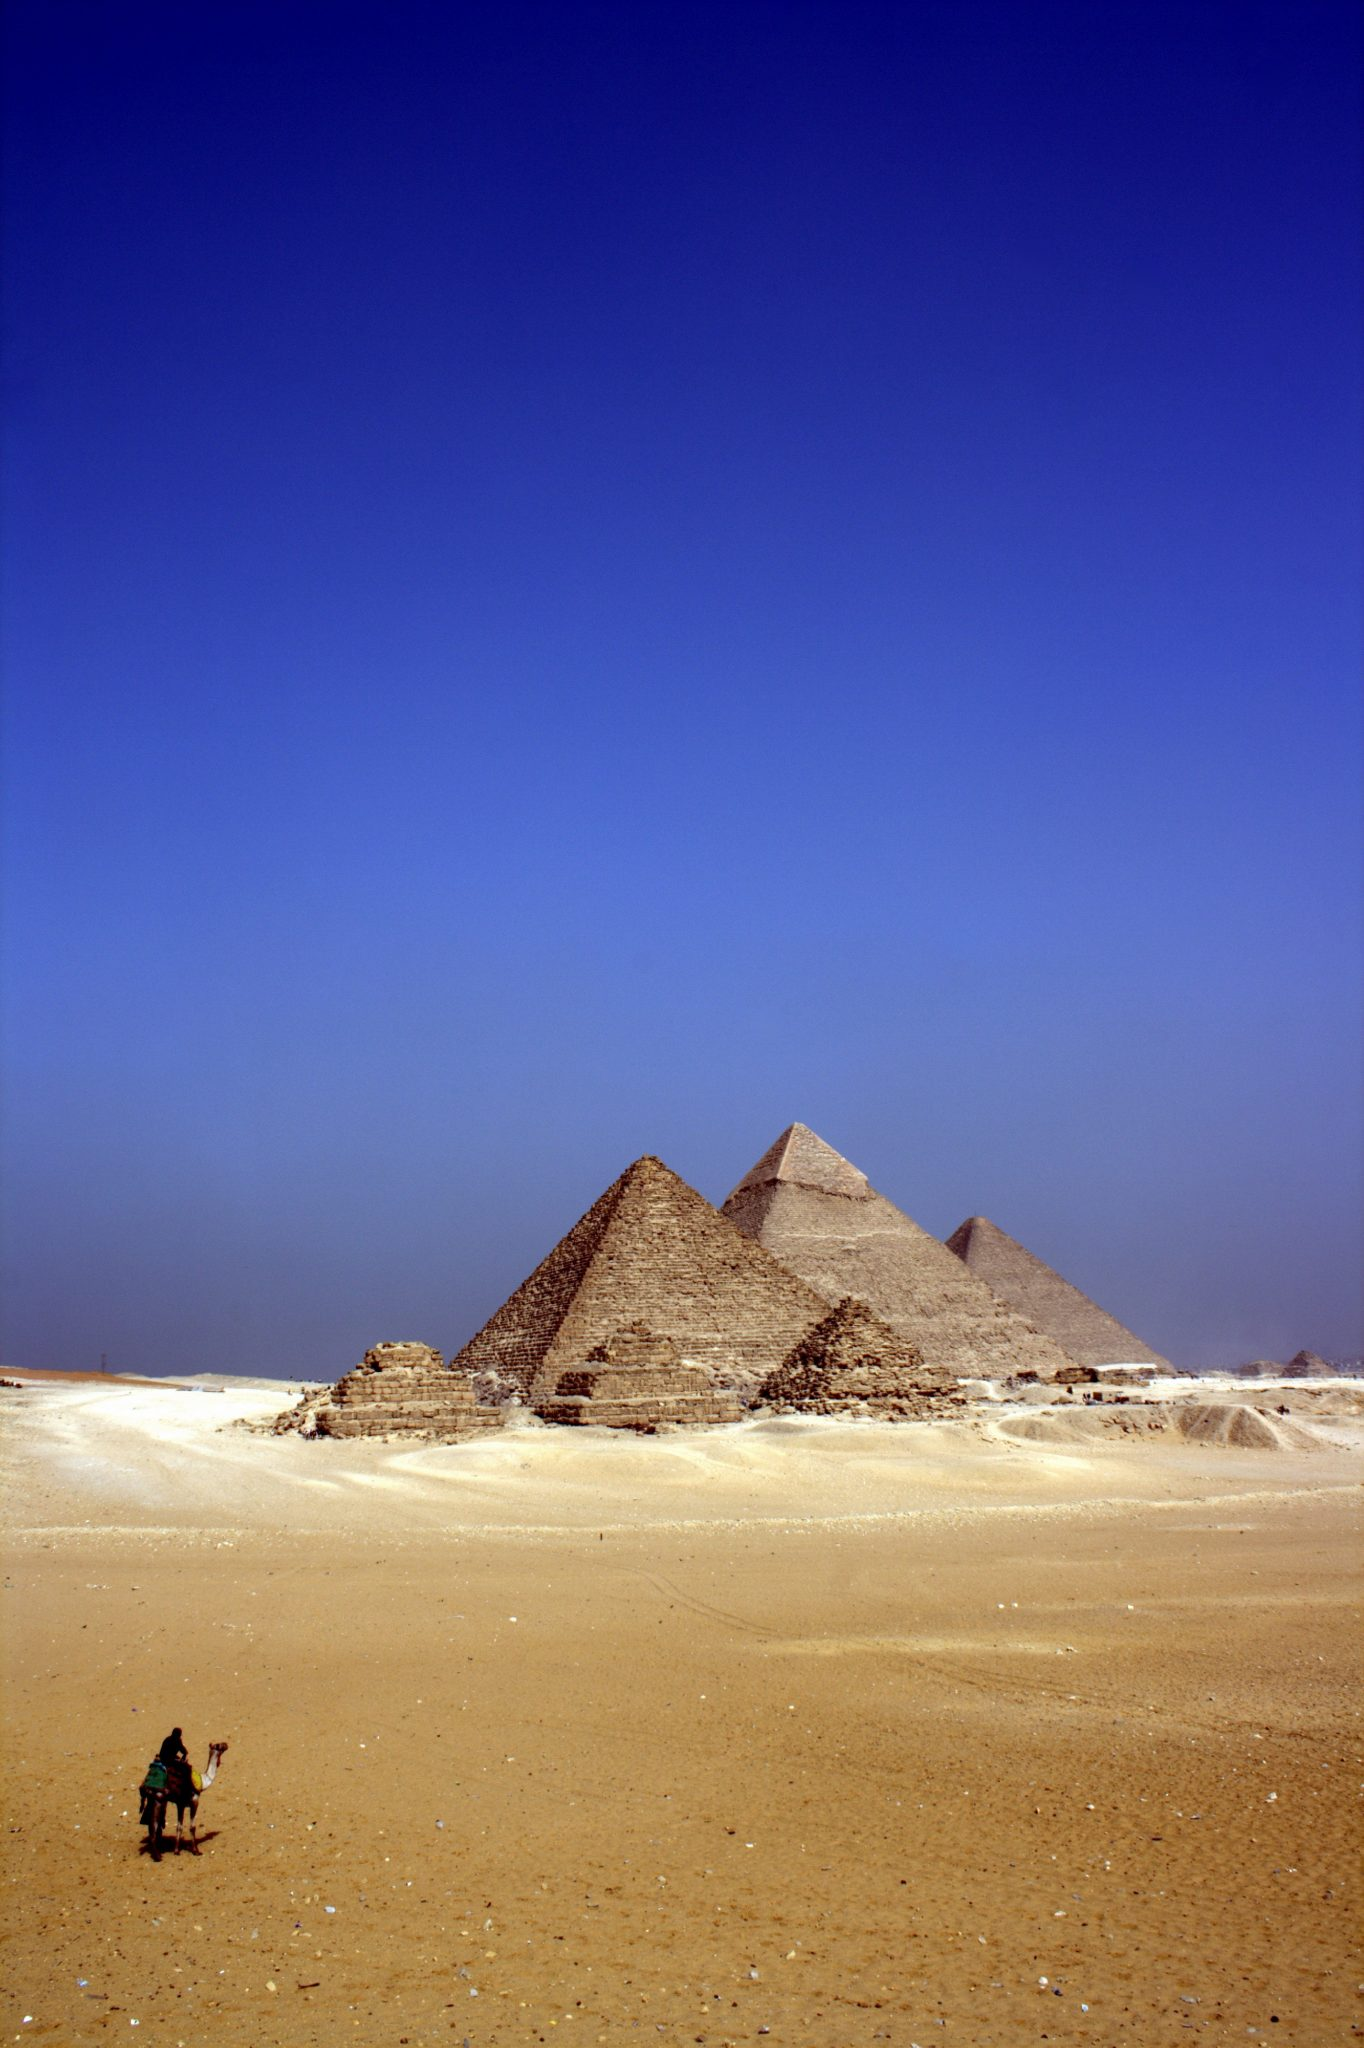 egypt pyramids, ancient structures, nethouseplans